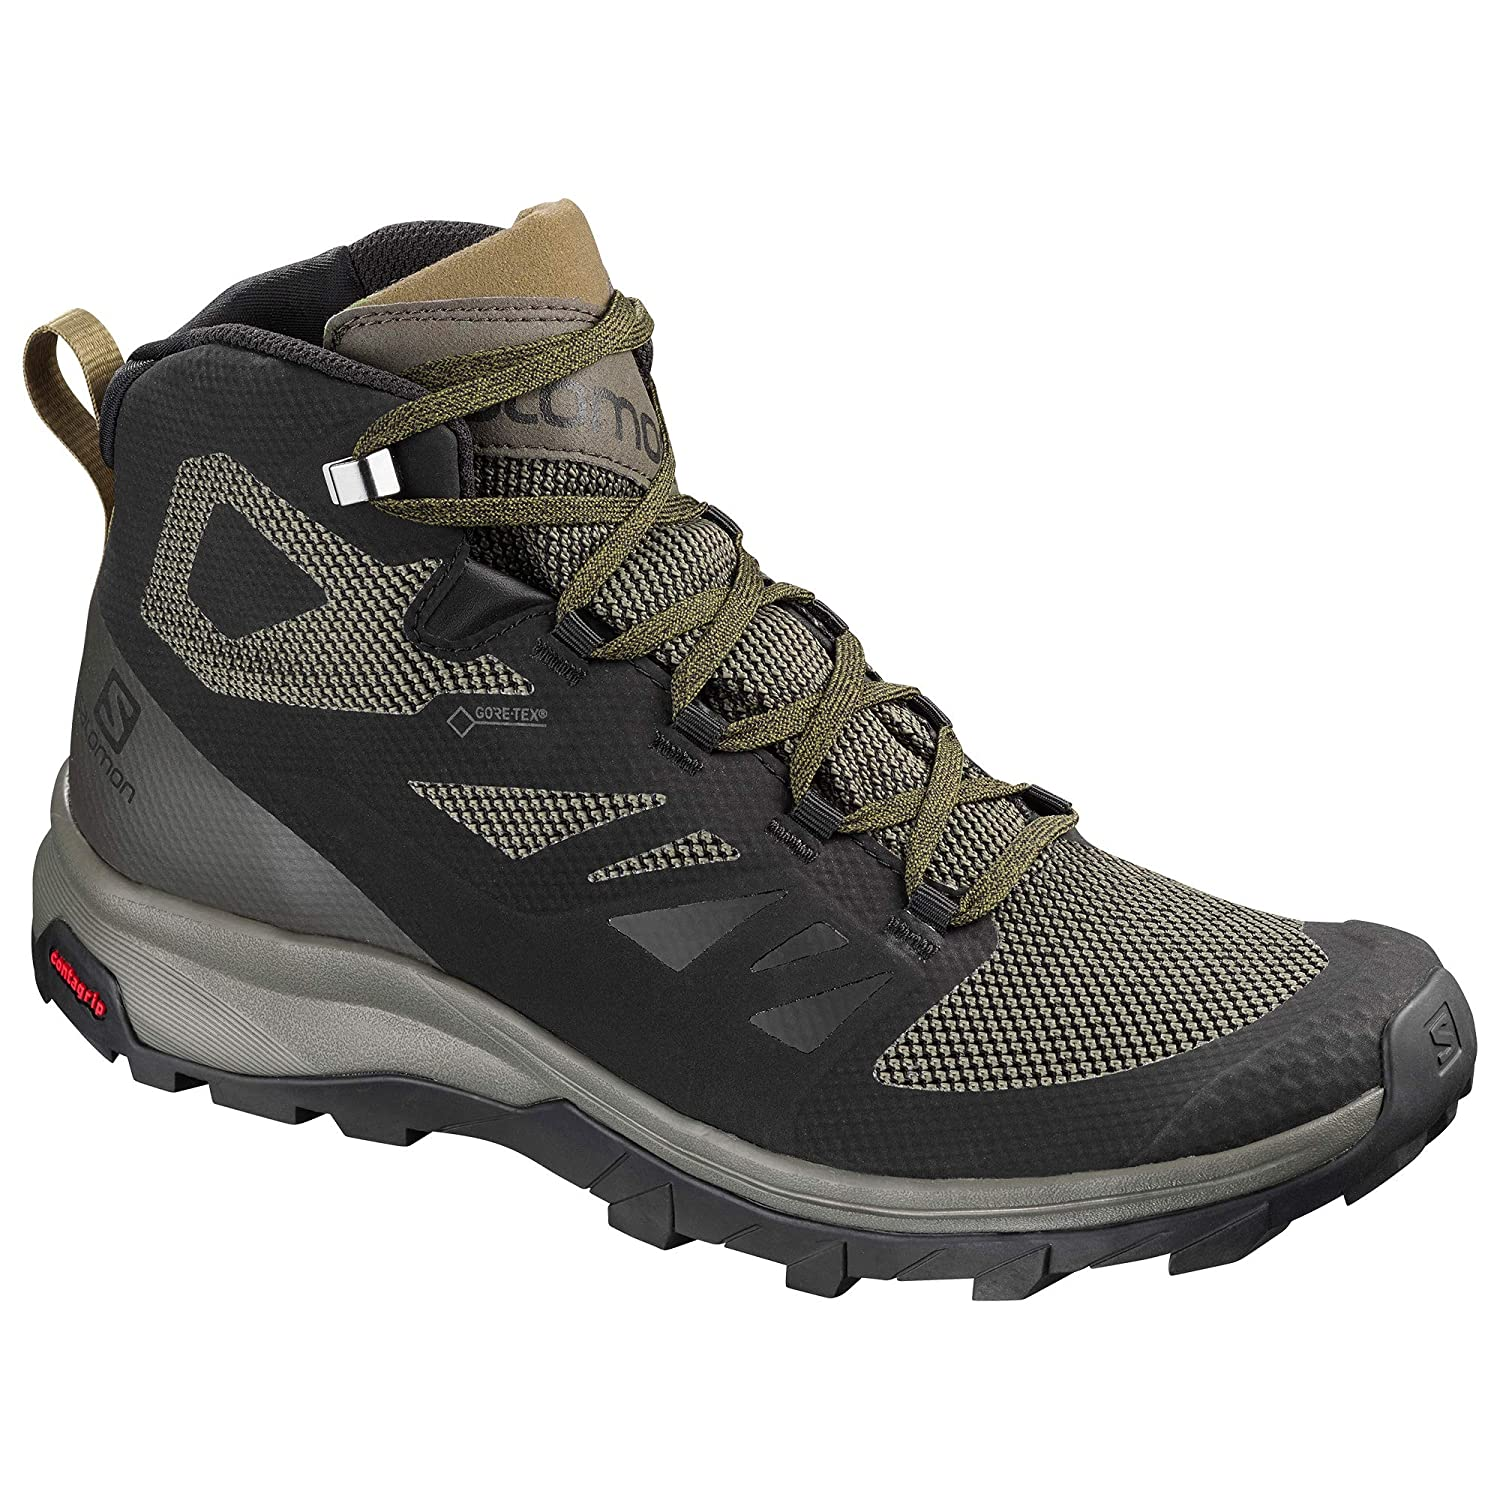 Salomon Outline Mid Waterproof Boot: Amazon.in: Sports